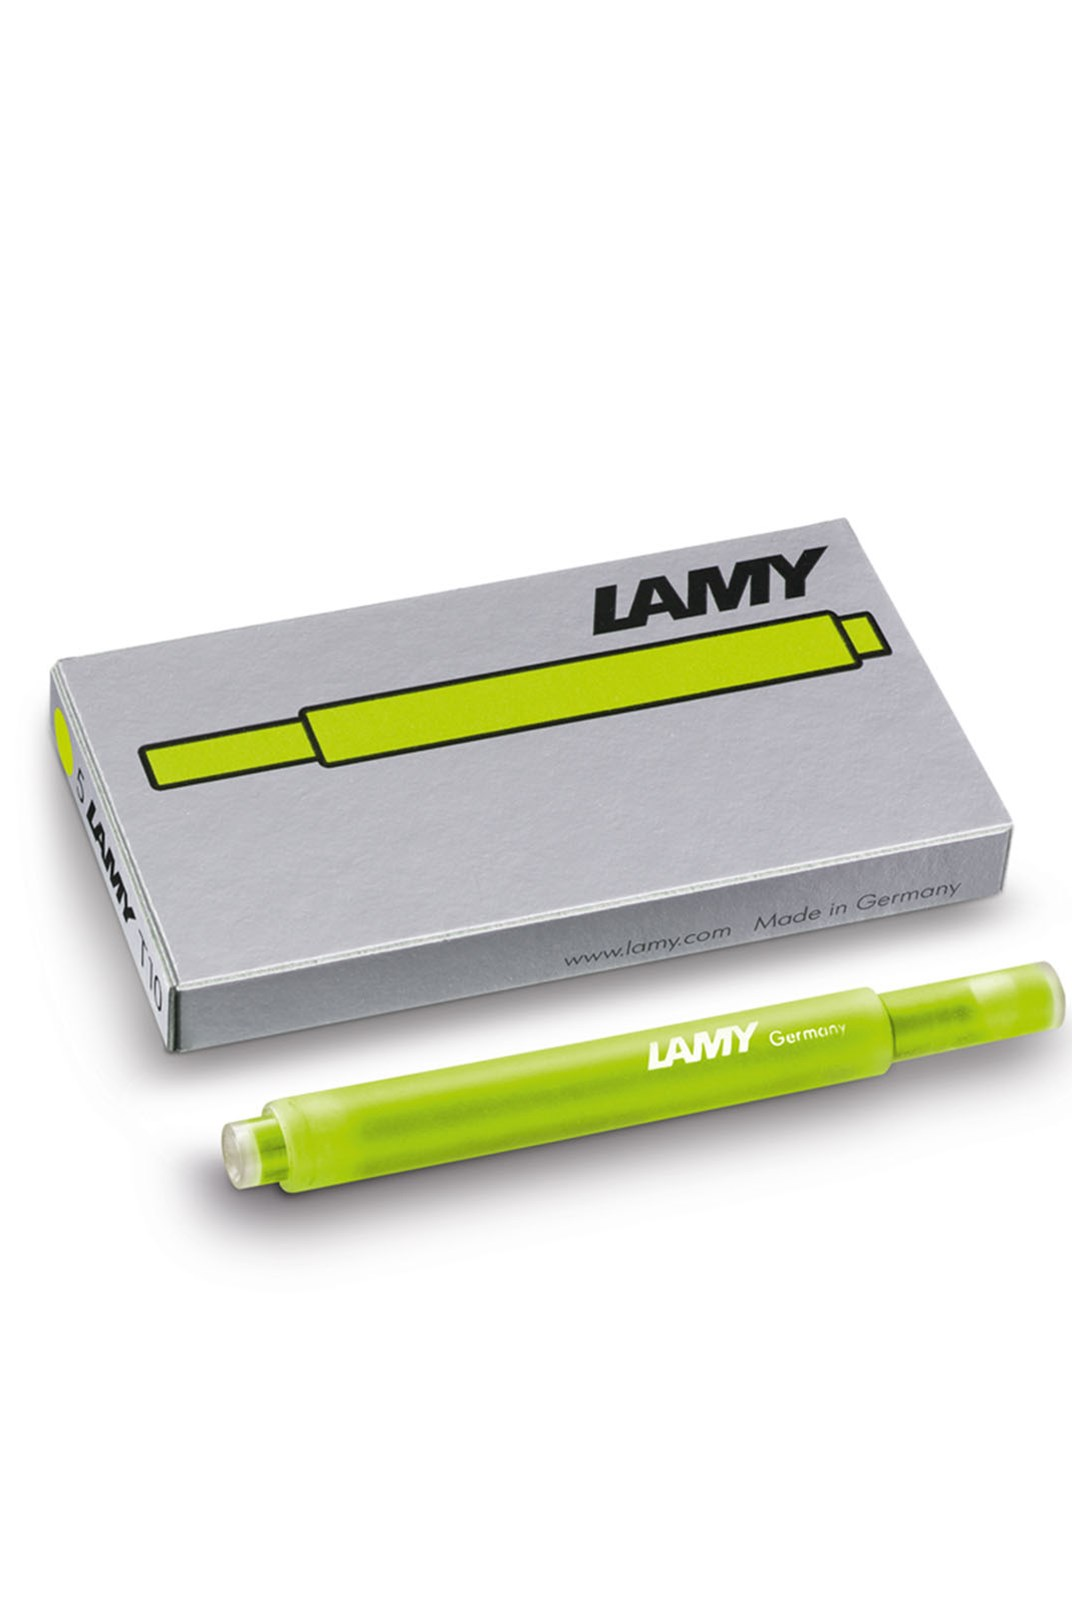 LAMY - T10 Fountain Pen Ink Cartridges - Pack of 5 - Neon Lime